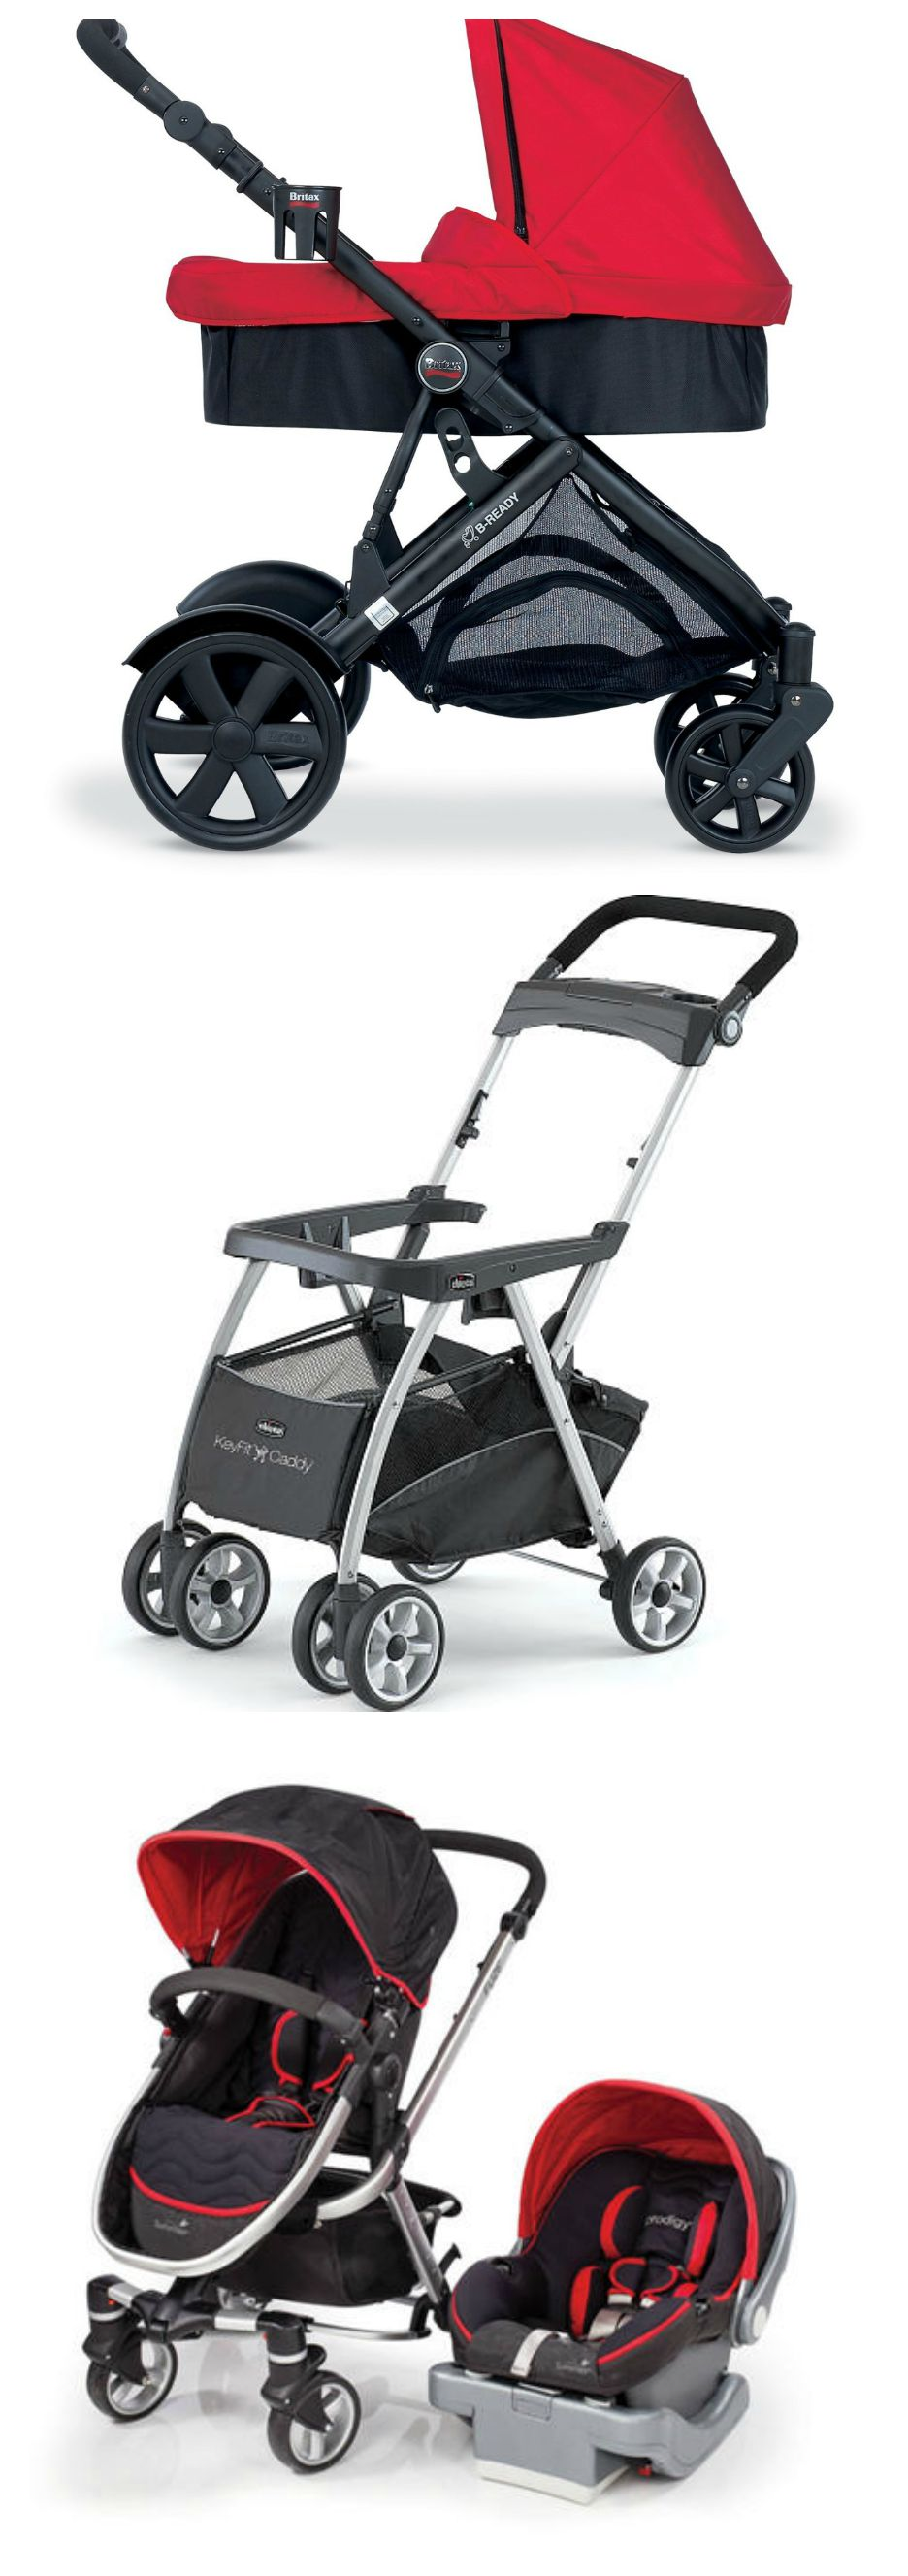 Which type of stroller is best for baby development. CanDoKiddo.com